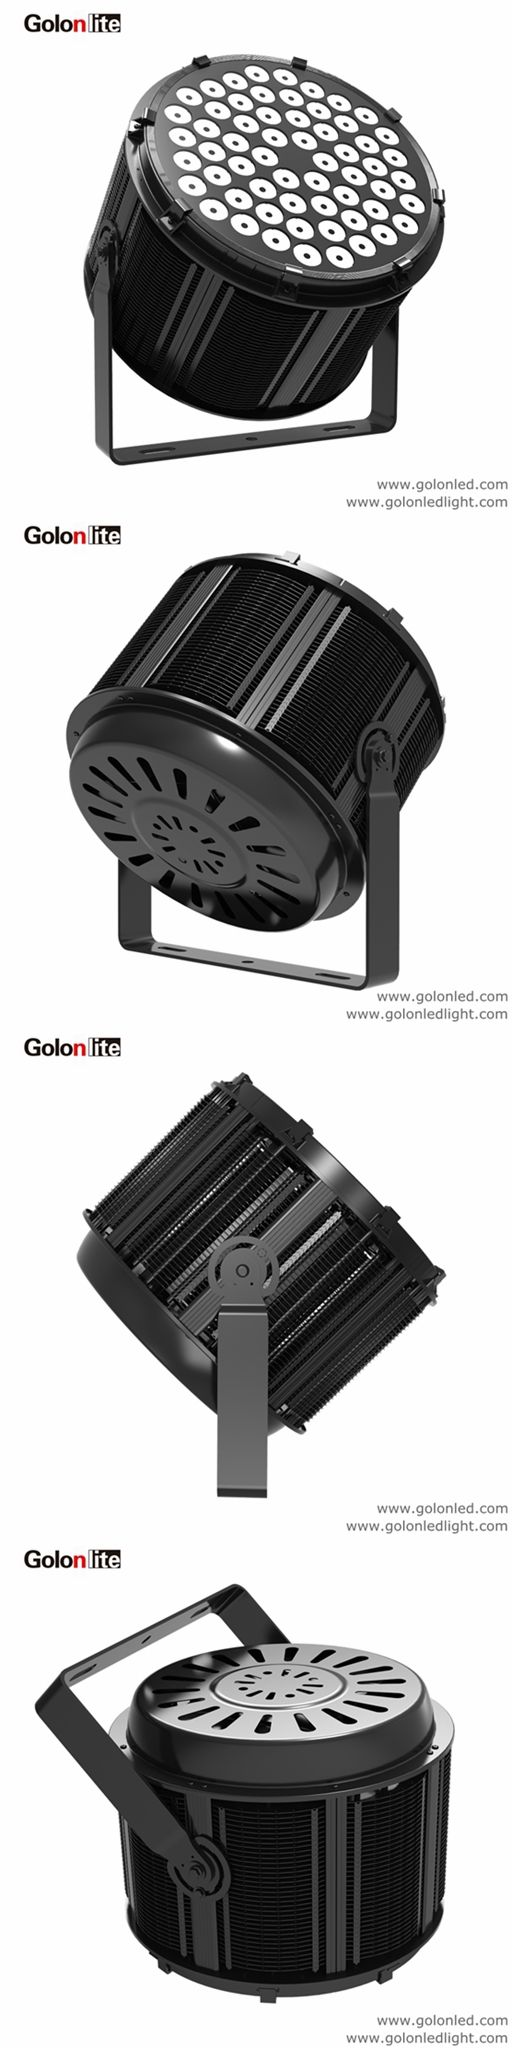 High power LED sport floodlighting 1200W 1000W 800W 600W 400W 15°  30° 60° #sportslighting #sportlighting #sportsfloodlighting #ledsportfloodlight